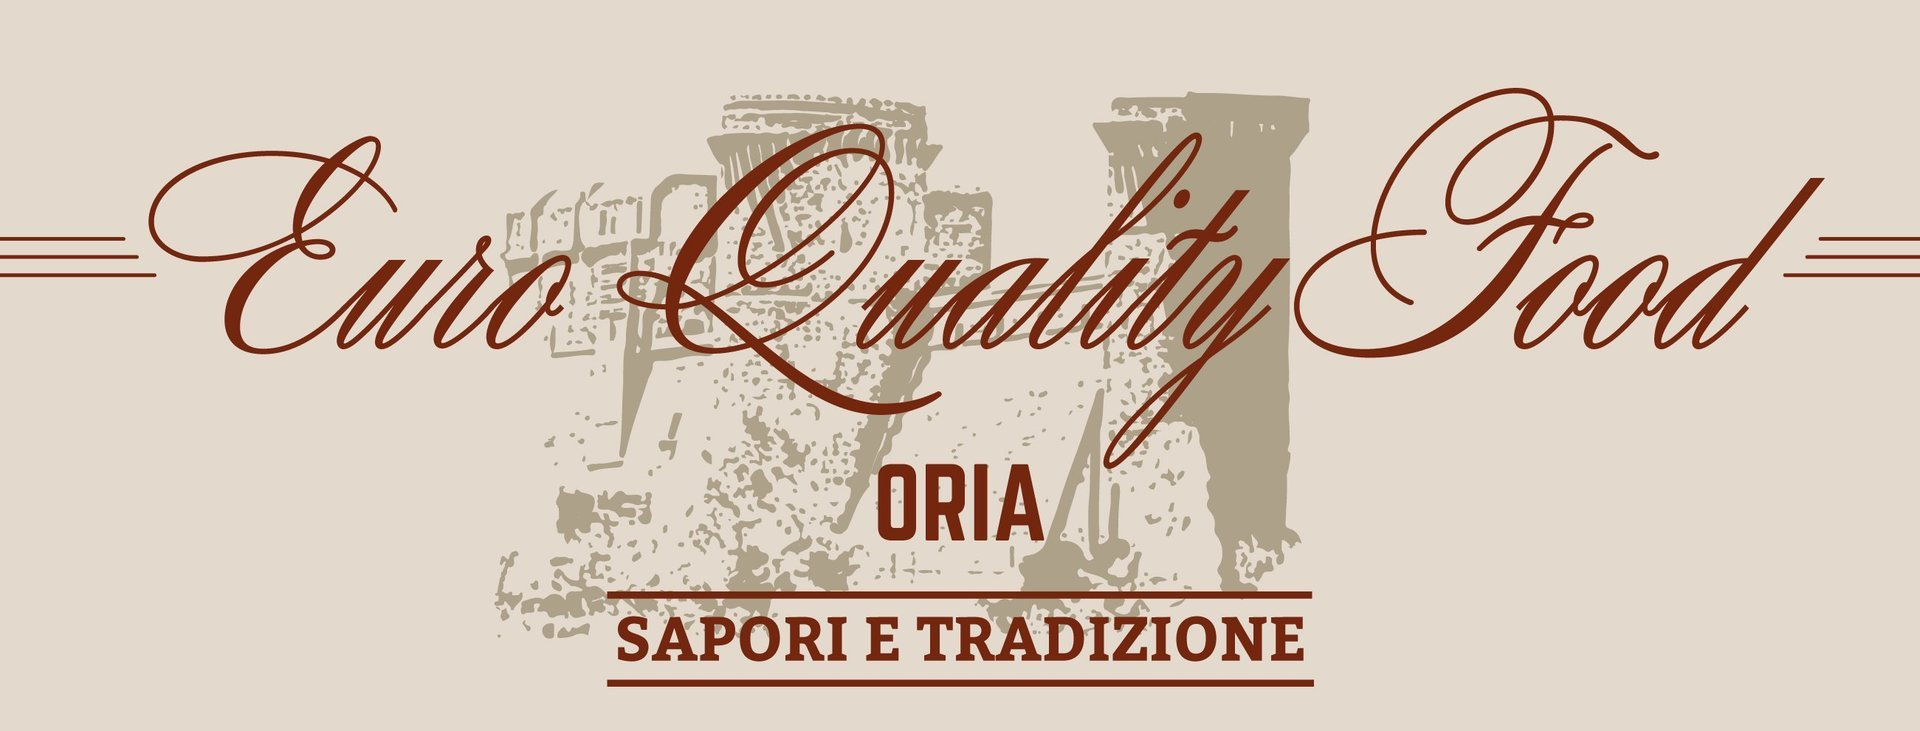 EURO QUALITY FOOD ORIA